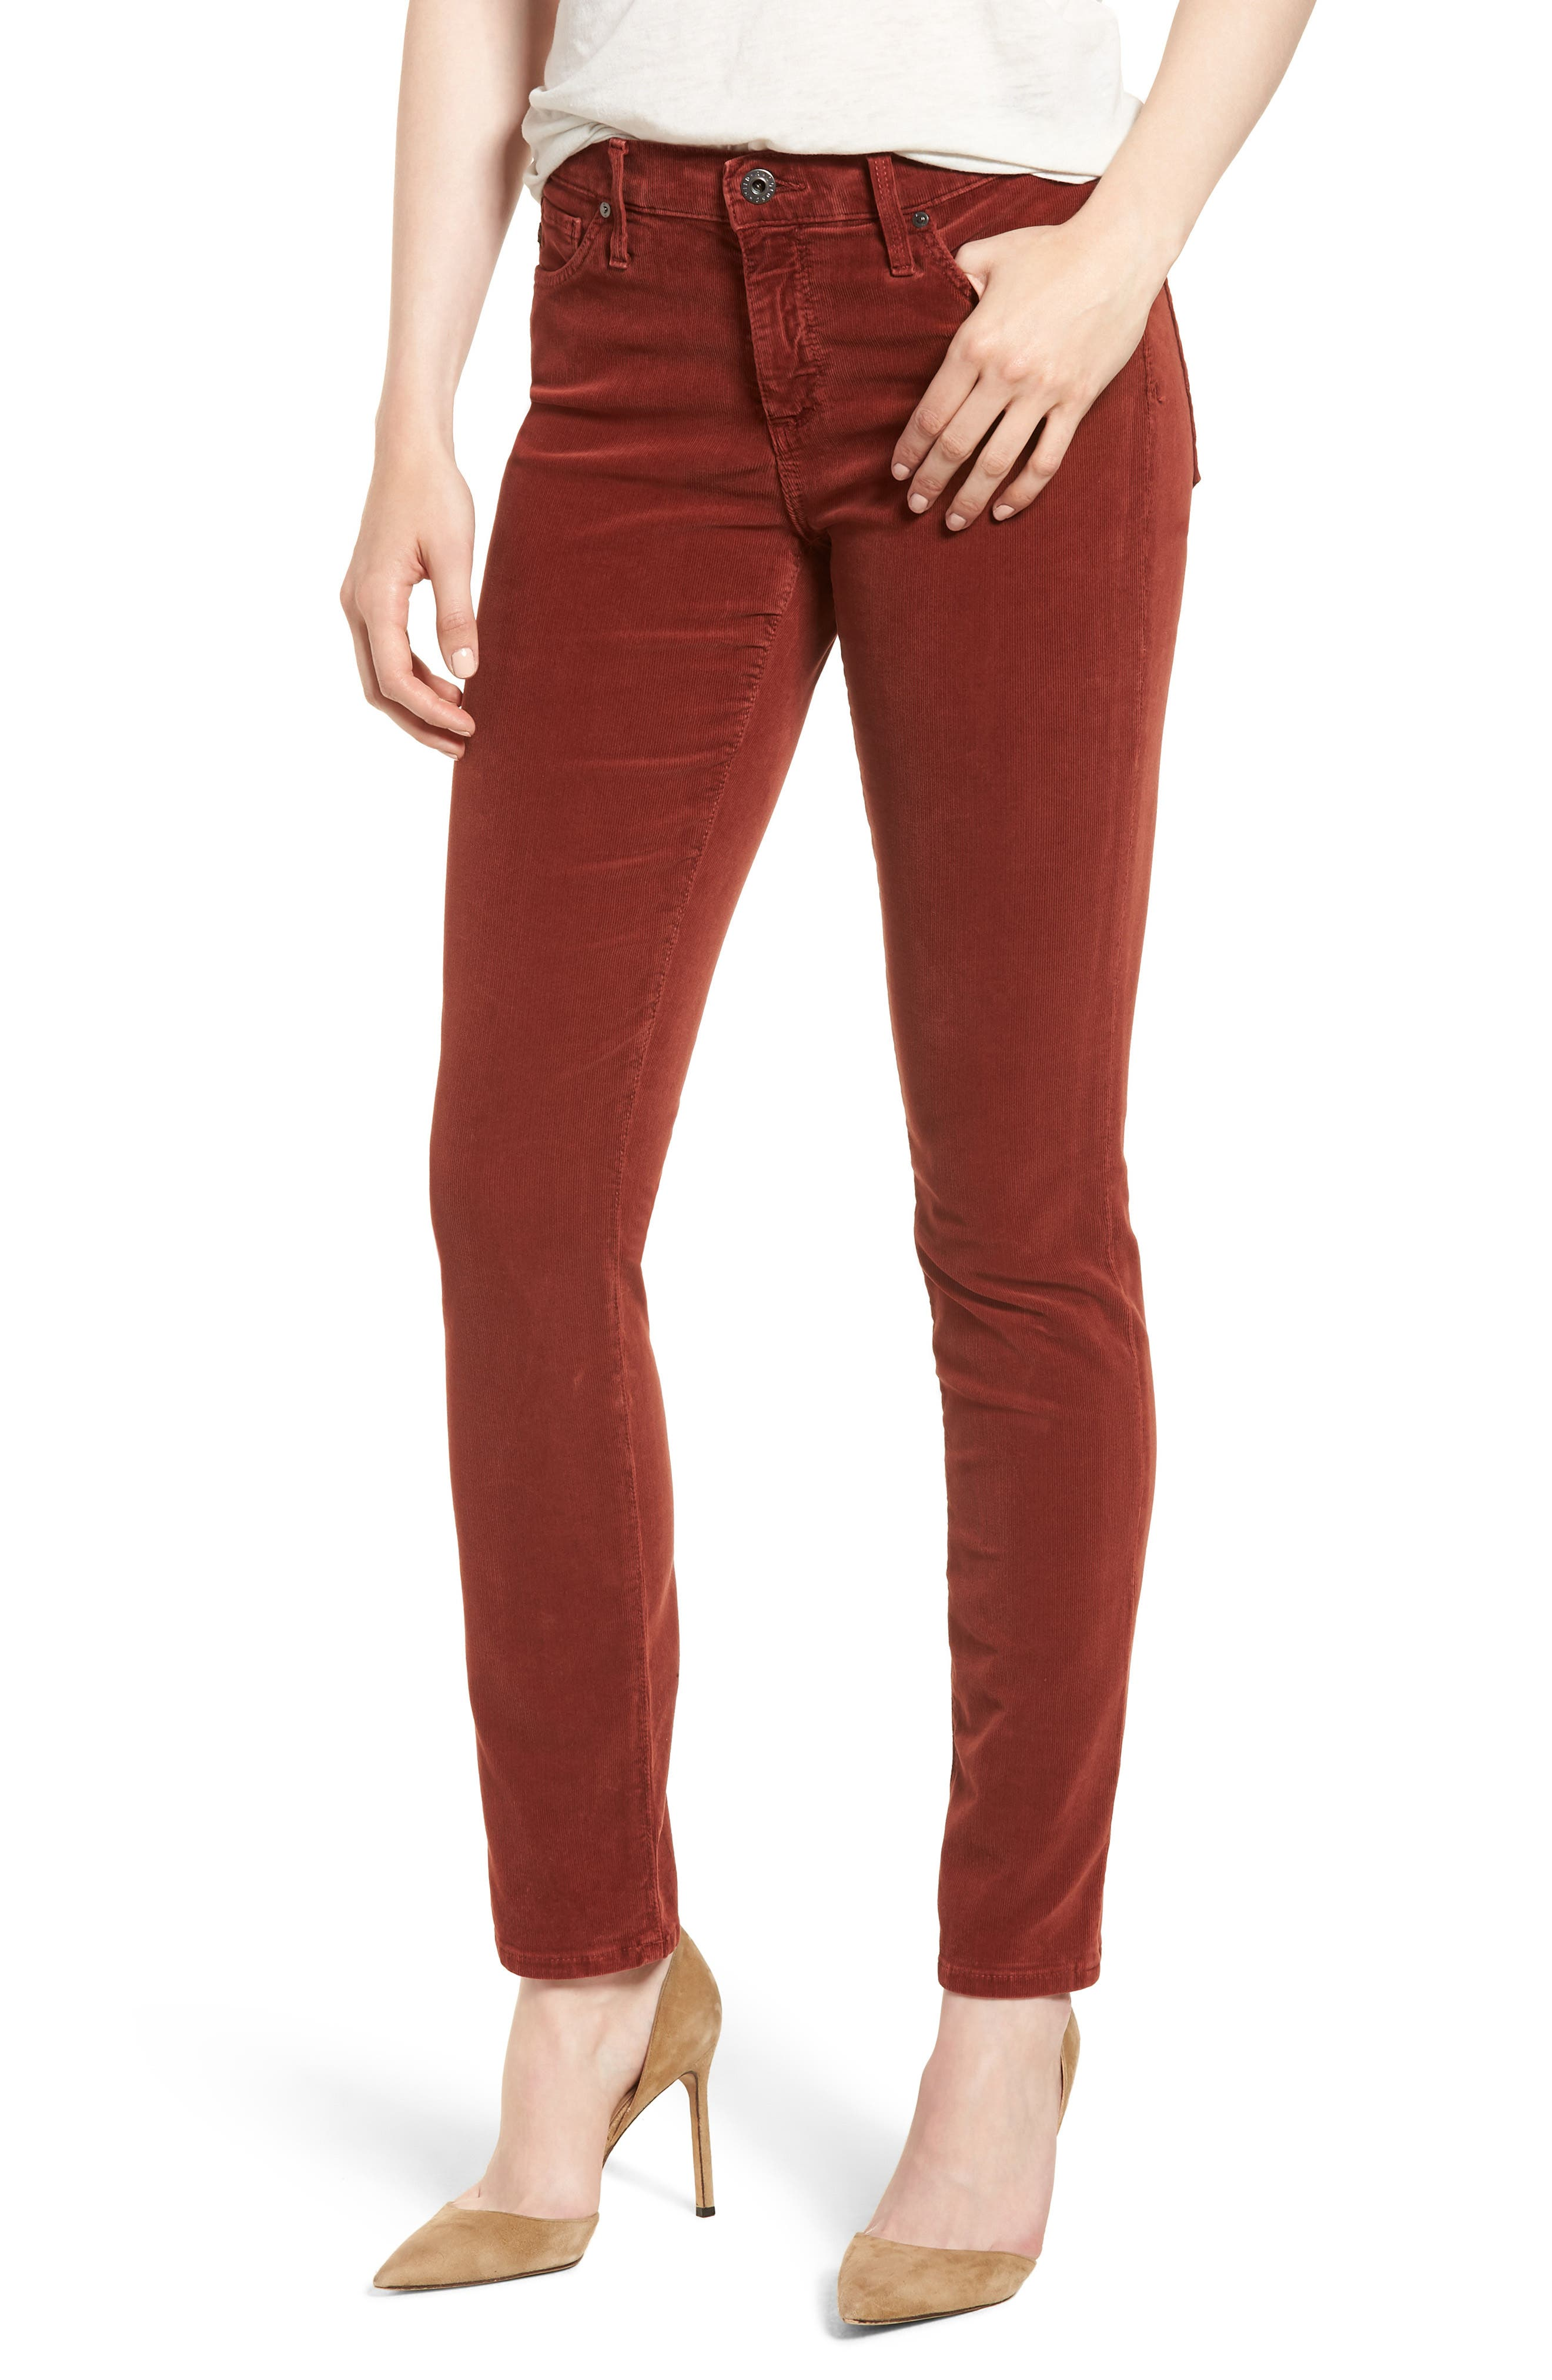 The Legging Corduory Skinny Ankle Jeans in Sulfur Tannic Red